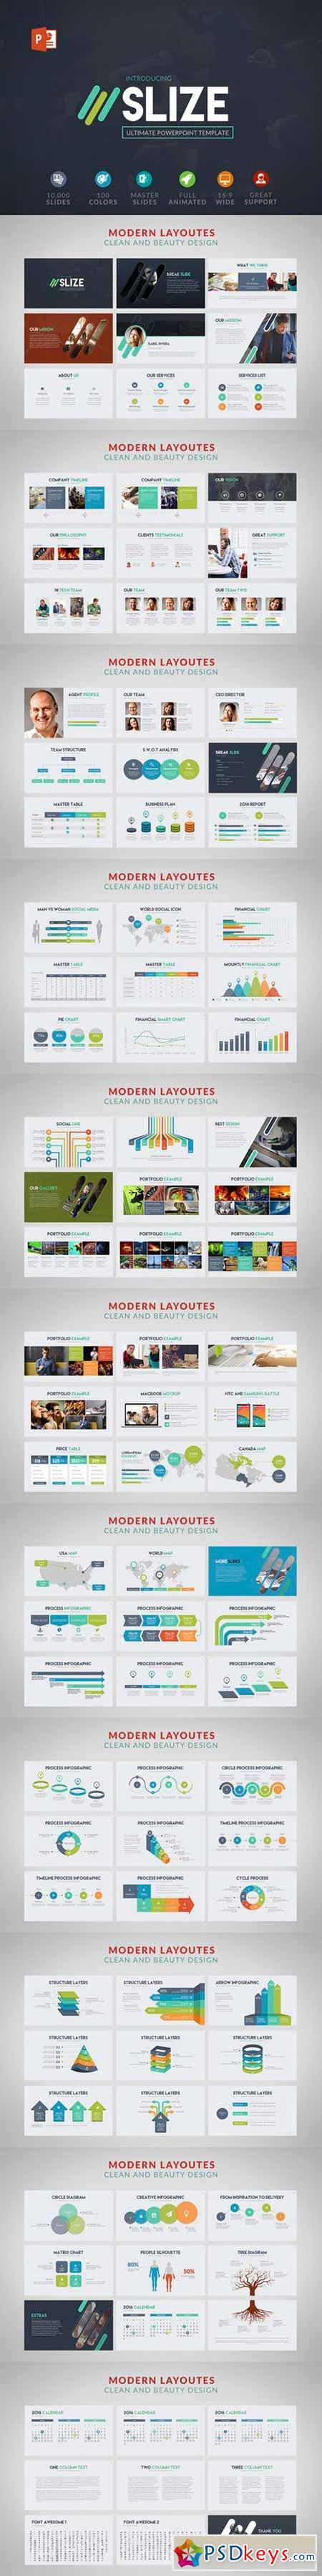 Slize Powerpoint template 530837